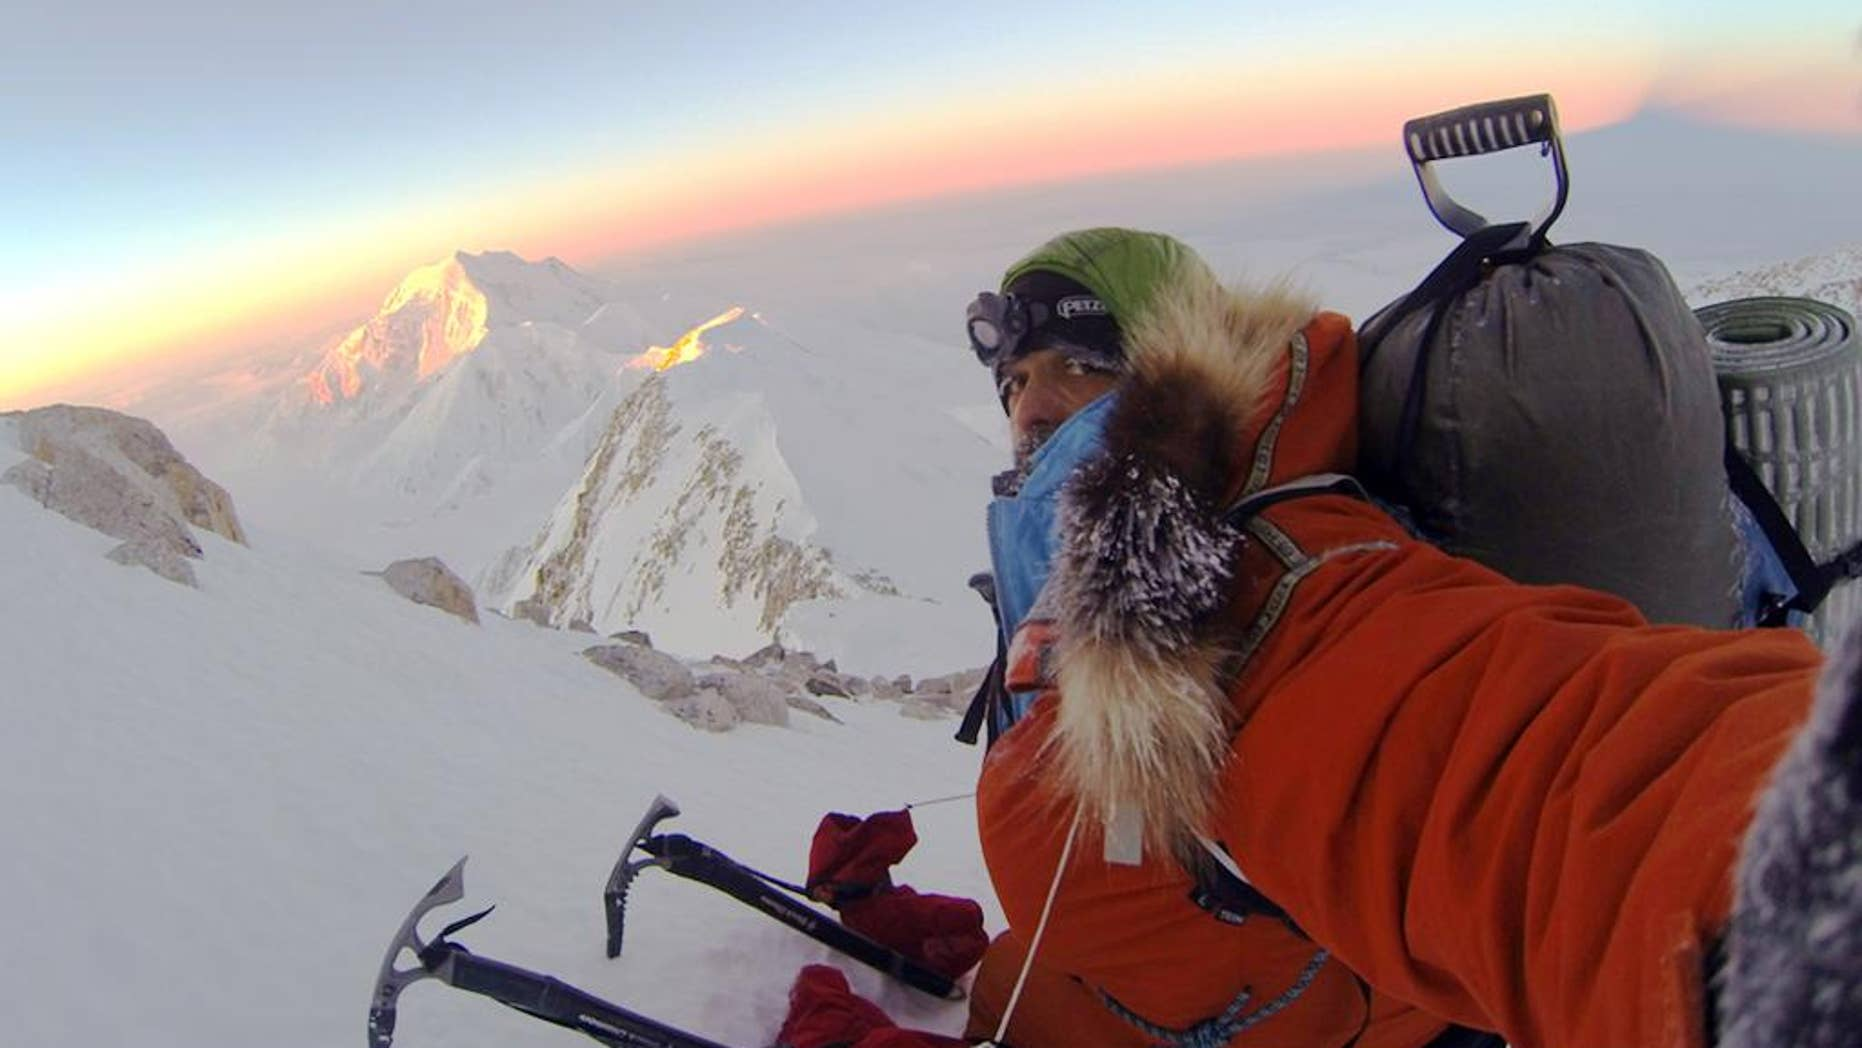 In this 2012 photo provided by climber Lonnie Dupre, Dupre takes a selfie during a failed attempt to climb the summit of Alaska's Mount McKinley, the tallest peak in North America. Dupre's support team said Monday, Jan. 12, 2015, that the Minnesota adventurer has succeeded in his fourth attempt to become the first solo climber to reach the summit, citing a GPS tracking device. (AP Photo/Lonnie Dupre)